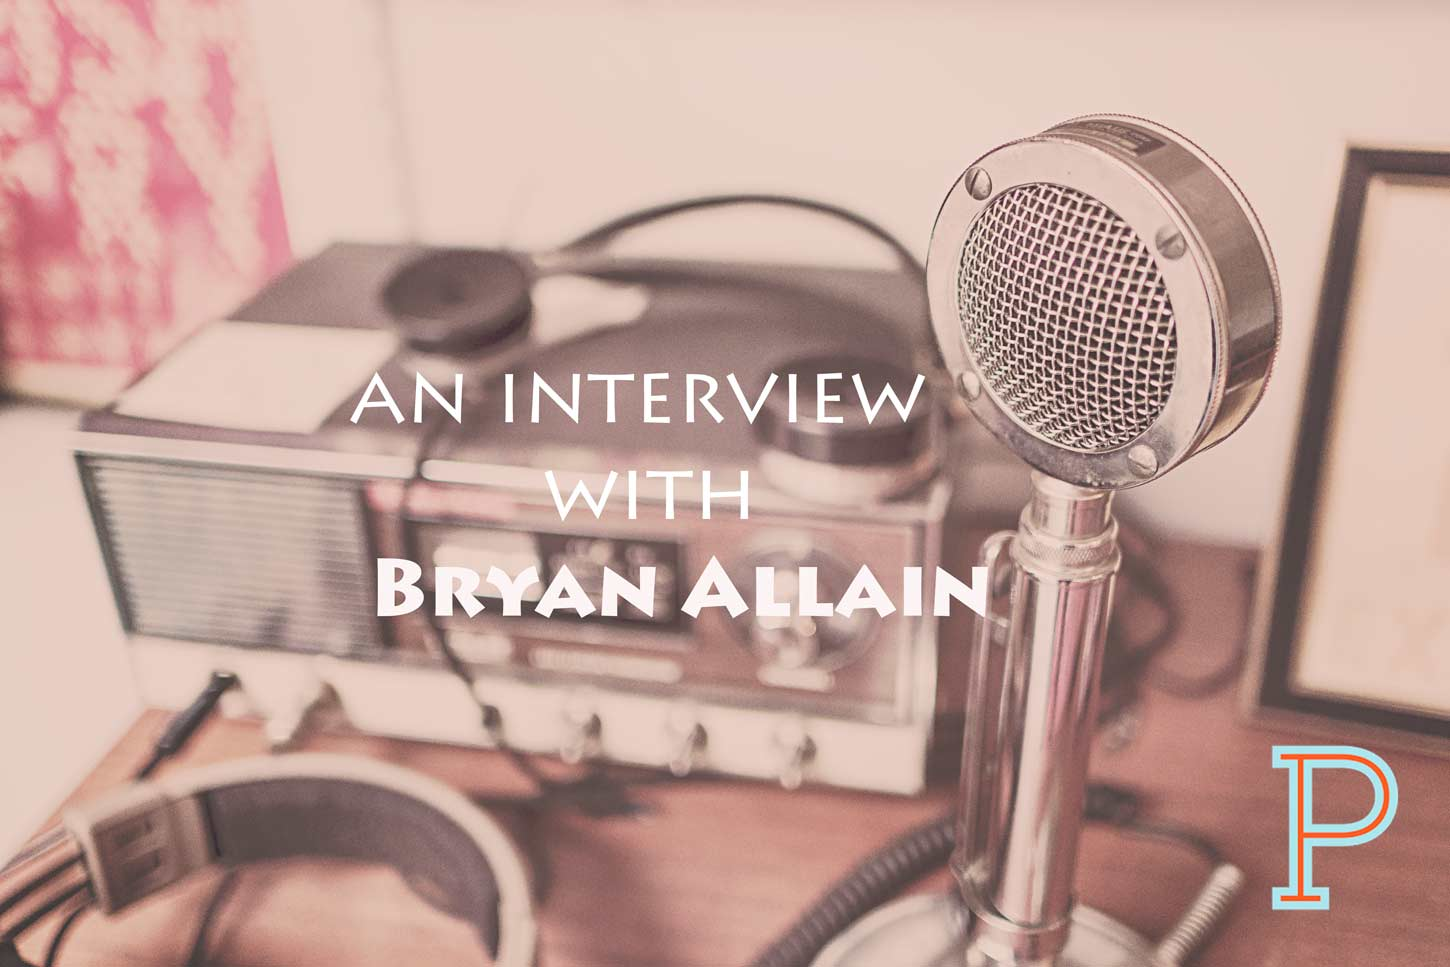 Bryan_Allain_Interview